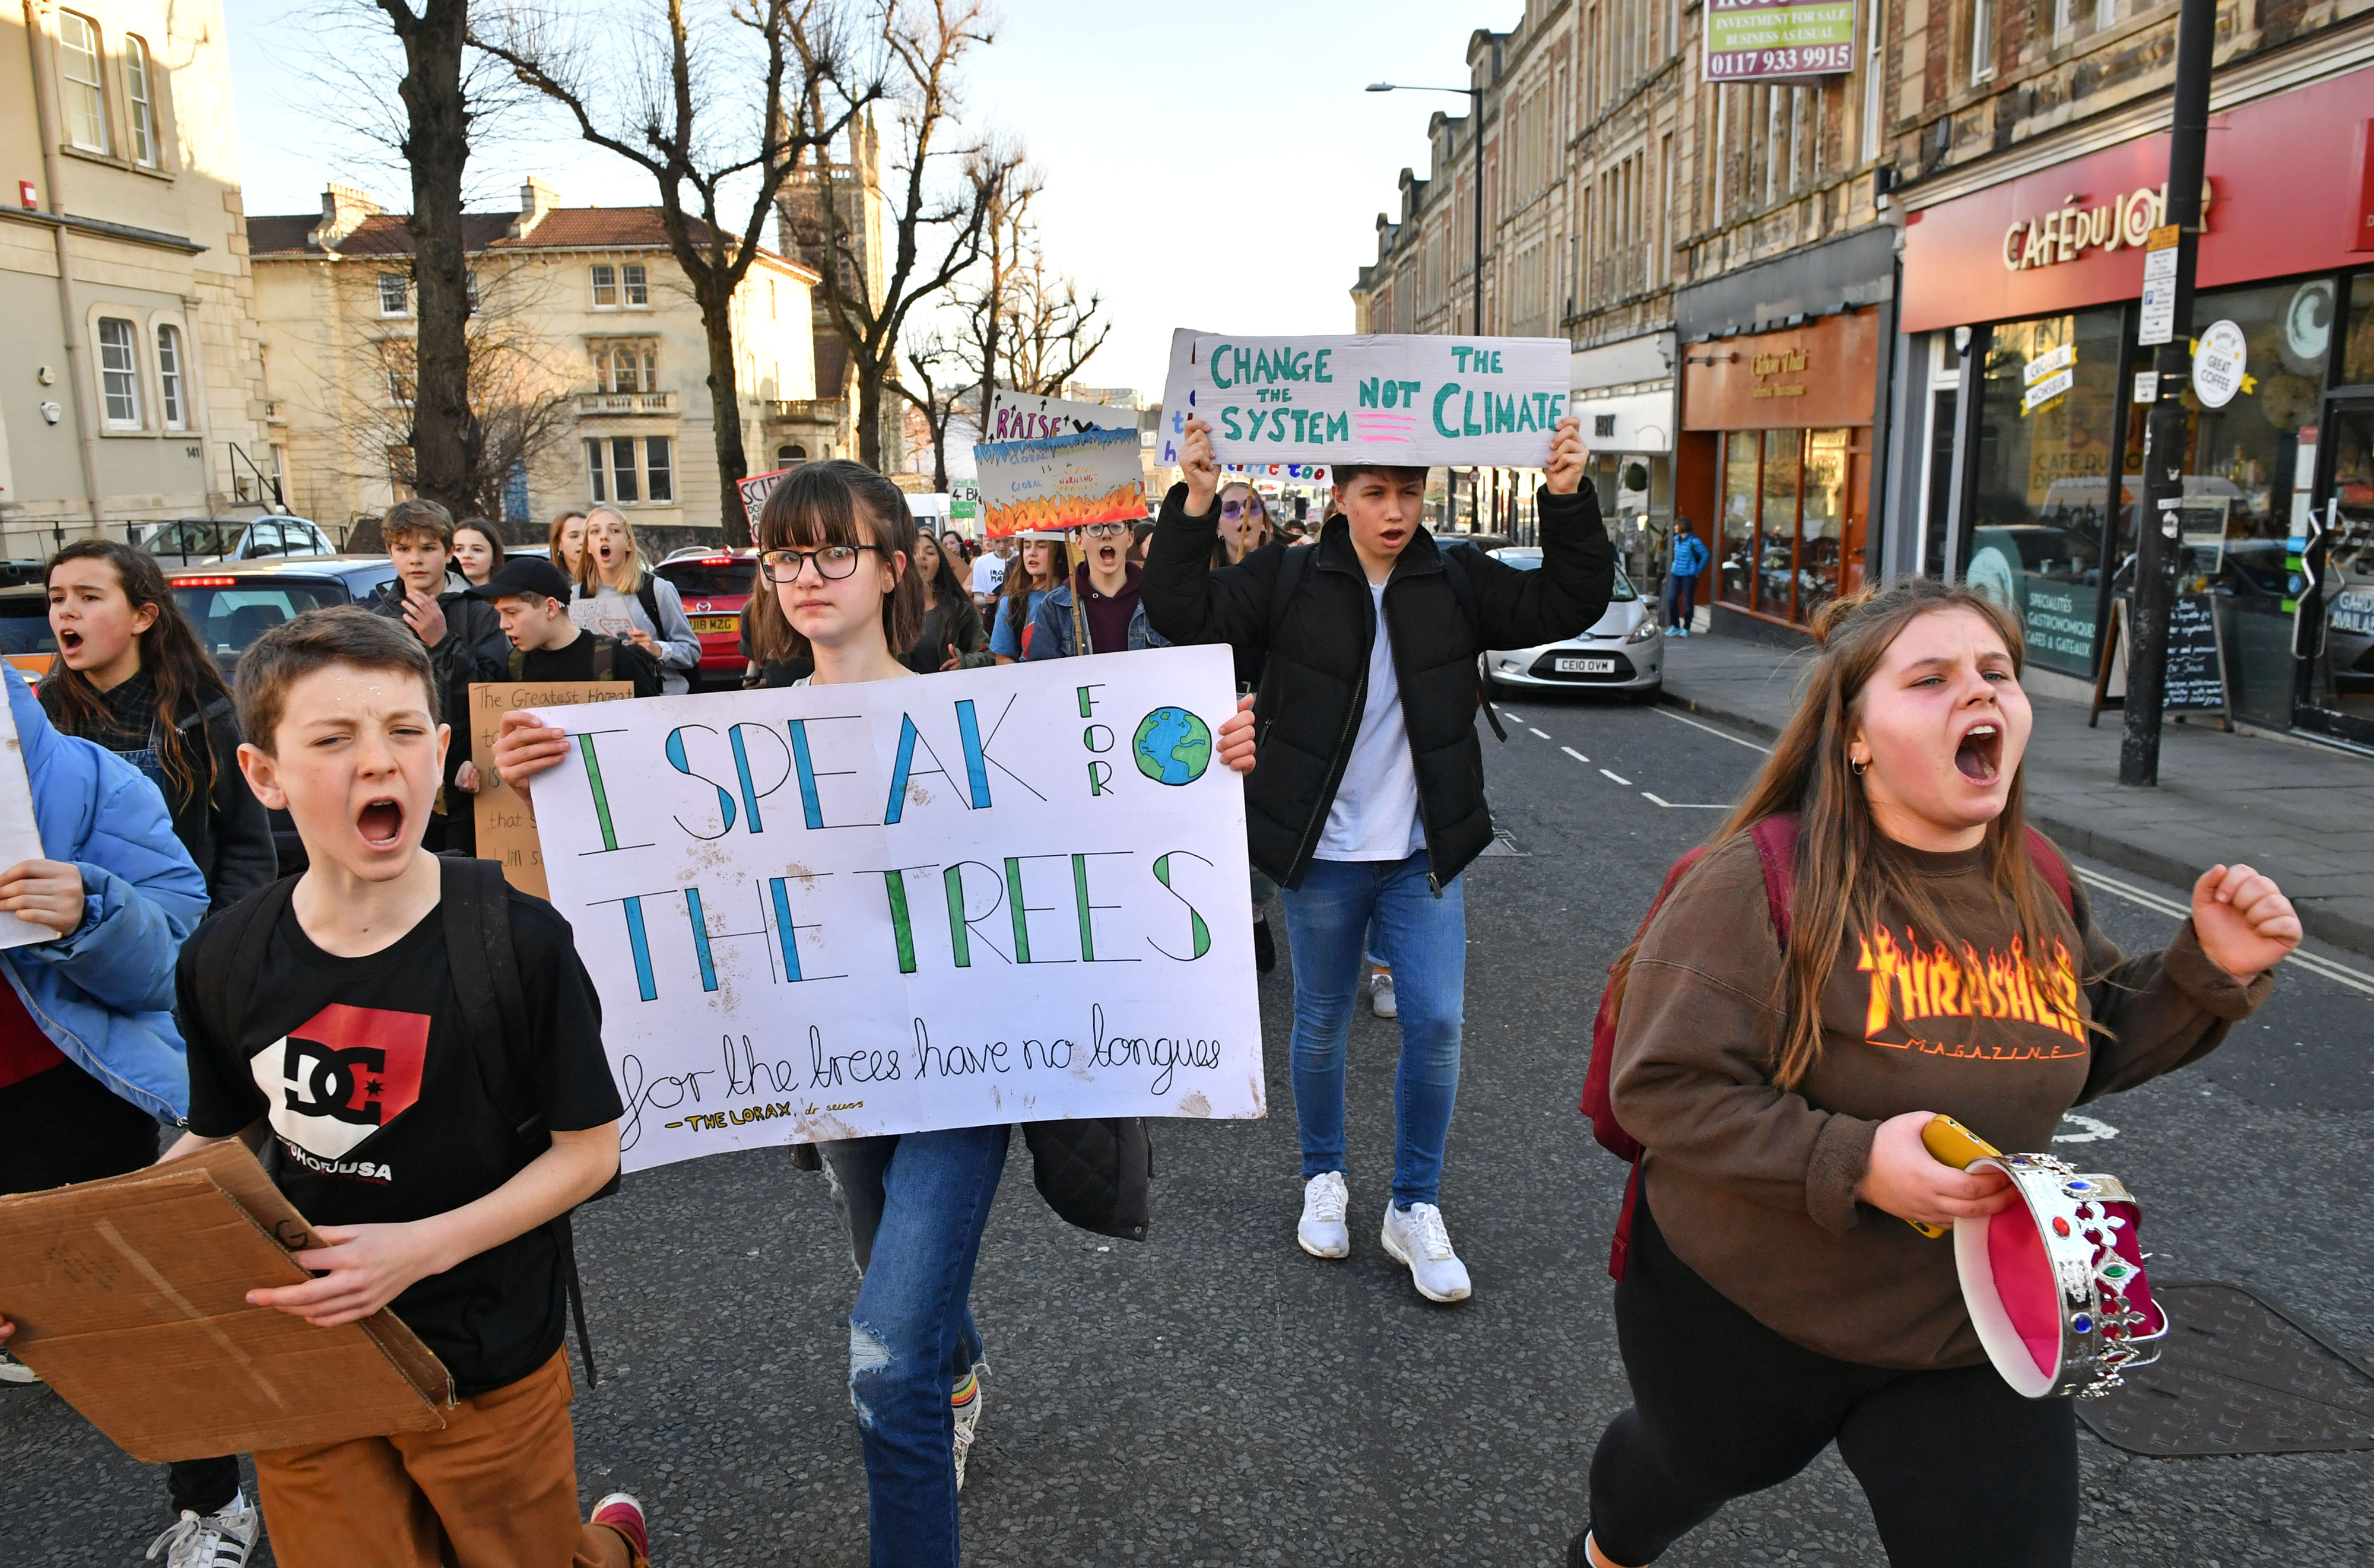 Demonstrators during a climate change protest in Bristol